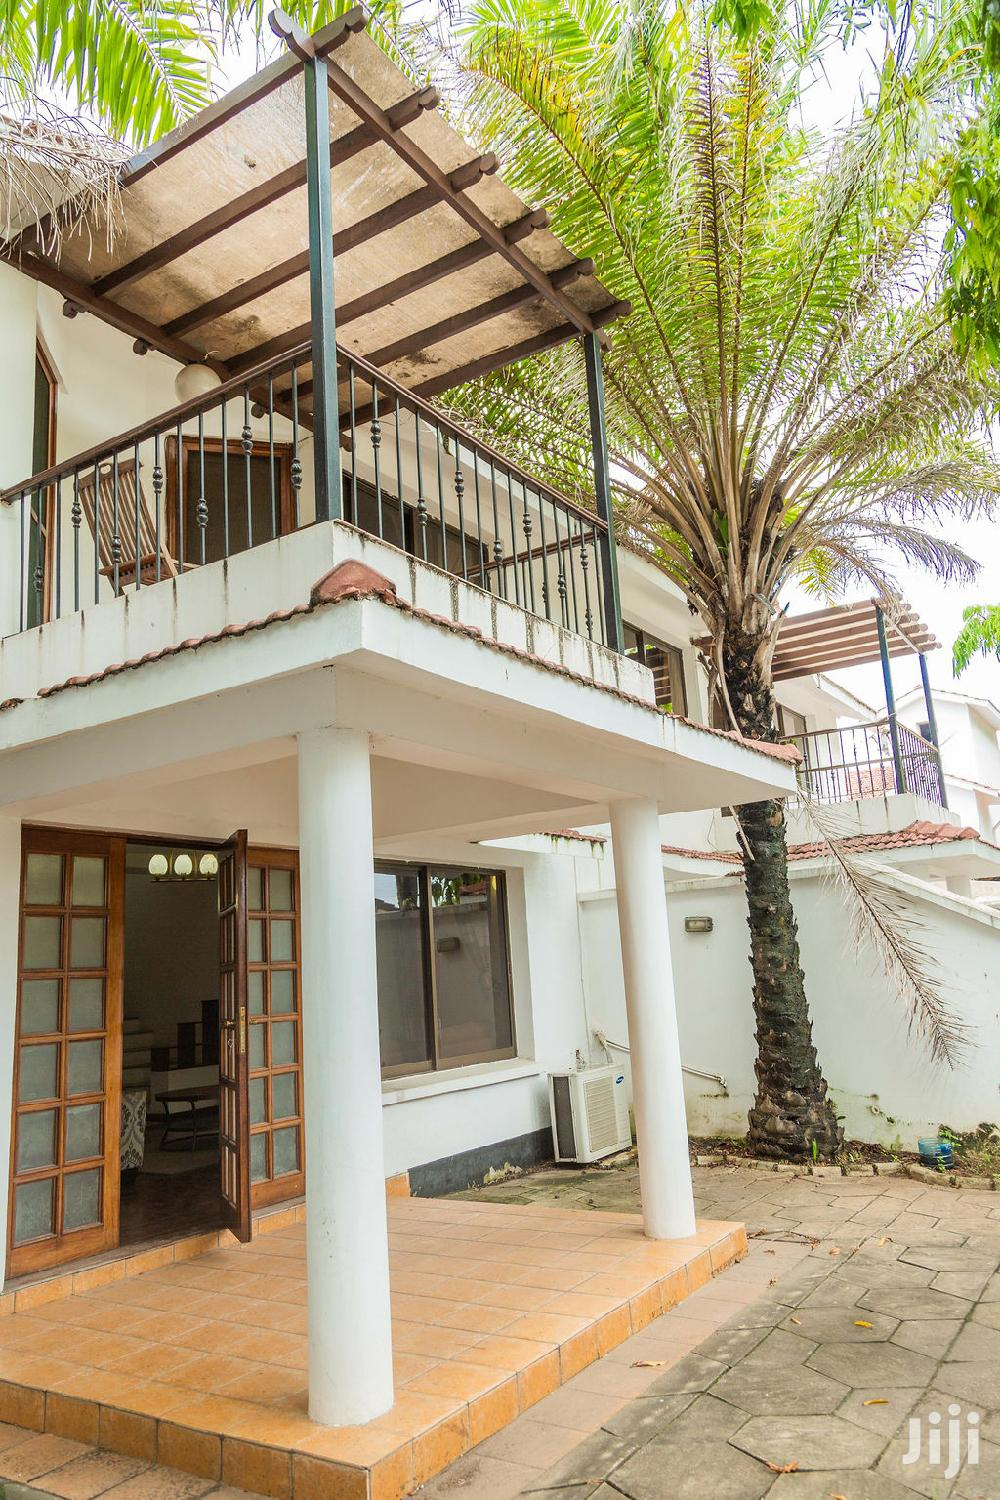 Villa For Rent At Oysterbay Dar Es Salaam   Houses & Apartments For Rent for sale in Masaki, Kisarawe, Tanzania